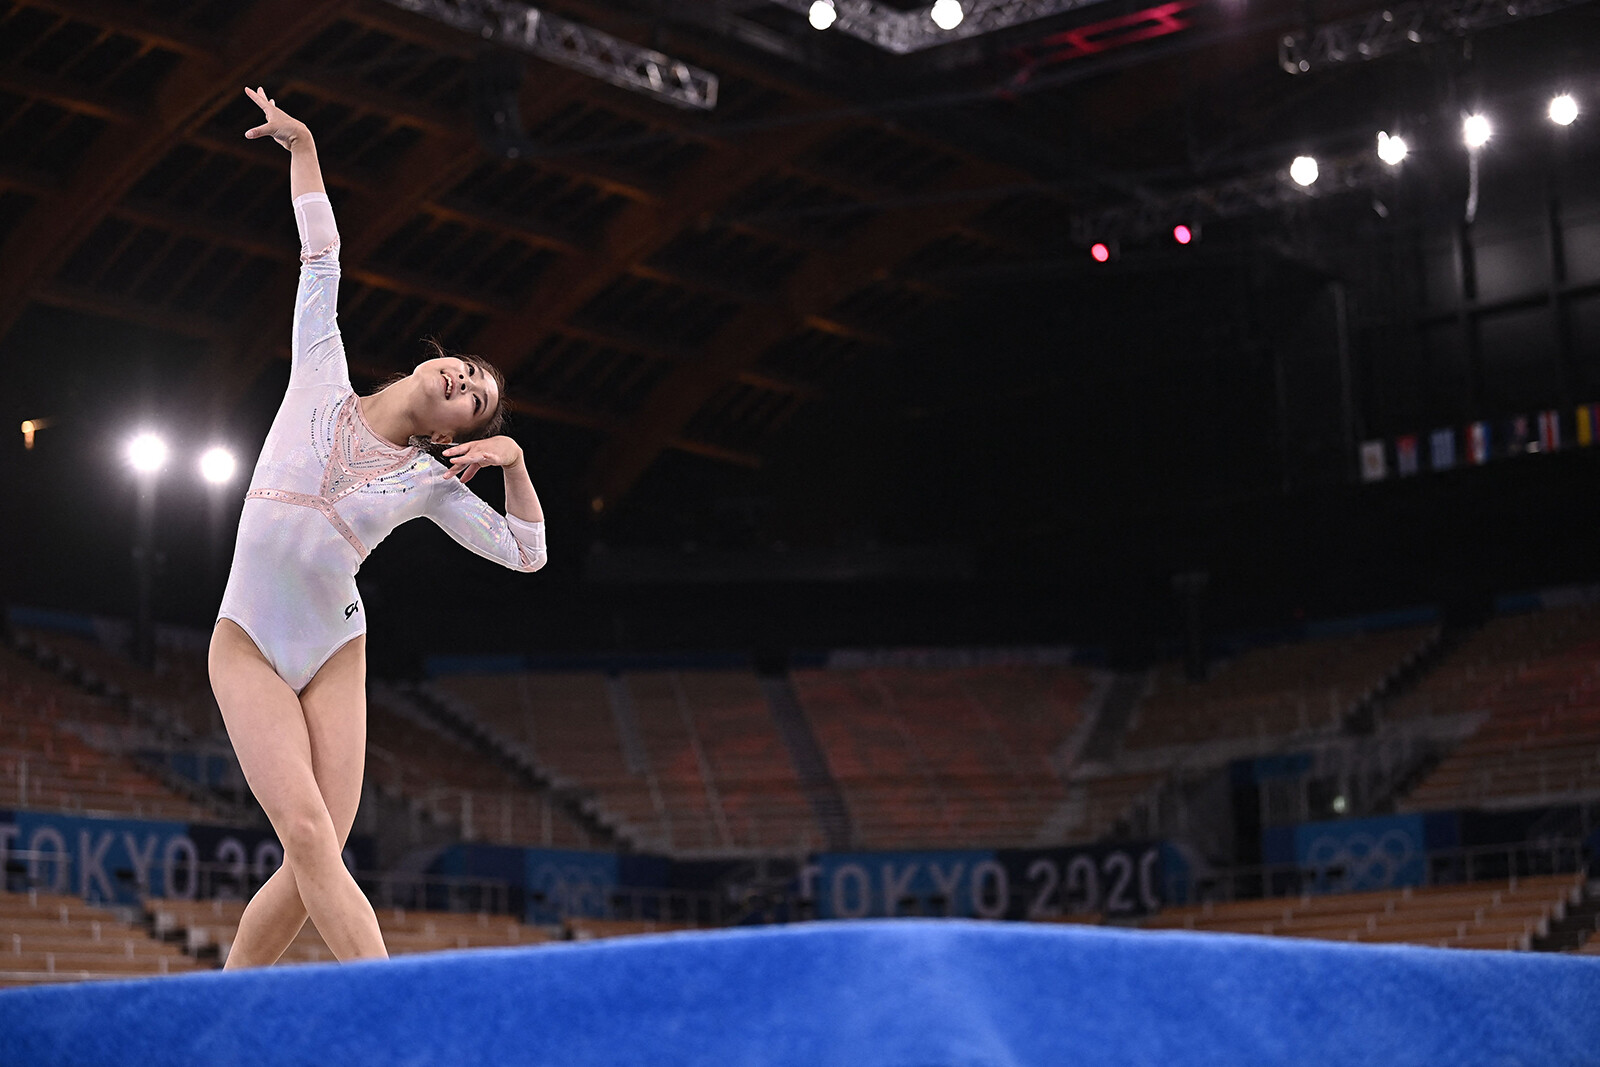 <i>Lionel Bonaventure/AFP/Getty Images</i><br/>South Korea's Yunseo Lee competes during the Tokyo Olympic Games.